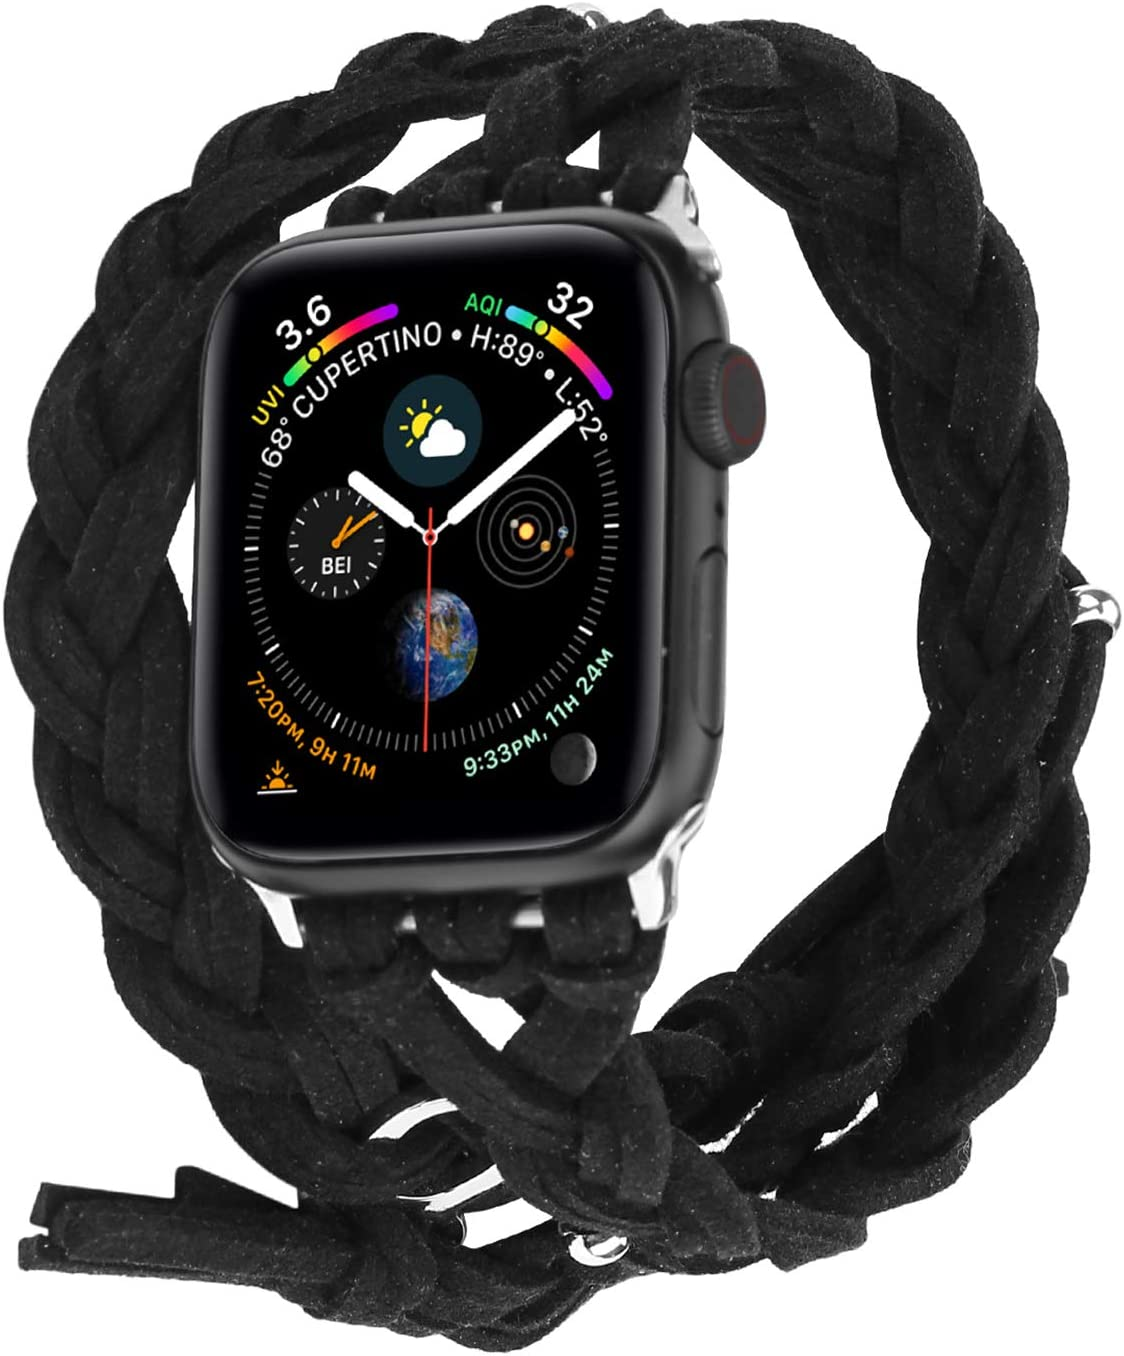 Compatible with Apple Watch Band 38mm 42mm 40mm 44mm, Woven Leather Smart Watch Strap Handmade Double Tour Bracelet Replacement for iWatch Series 5 4 3 2 1 Vintage Band (Black, 42mm)